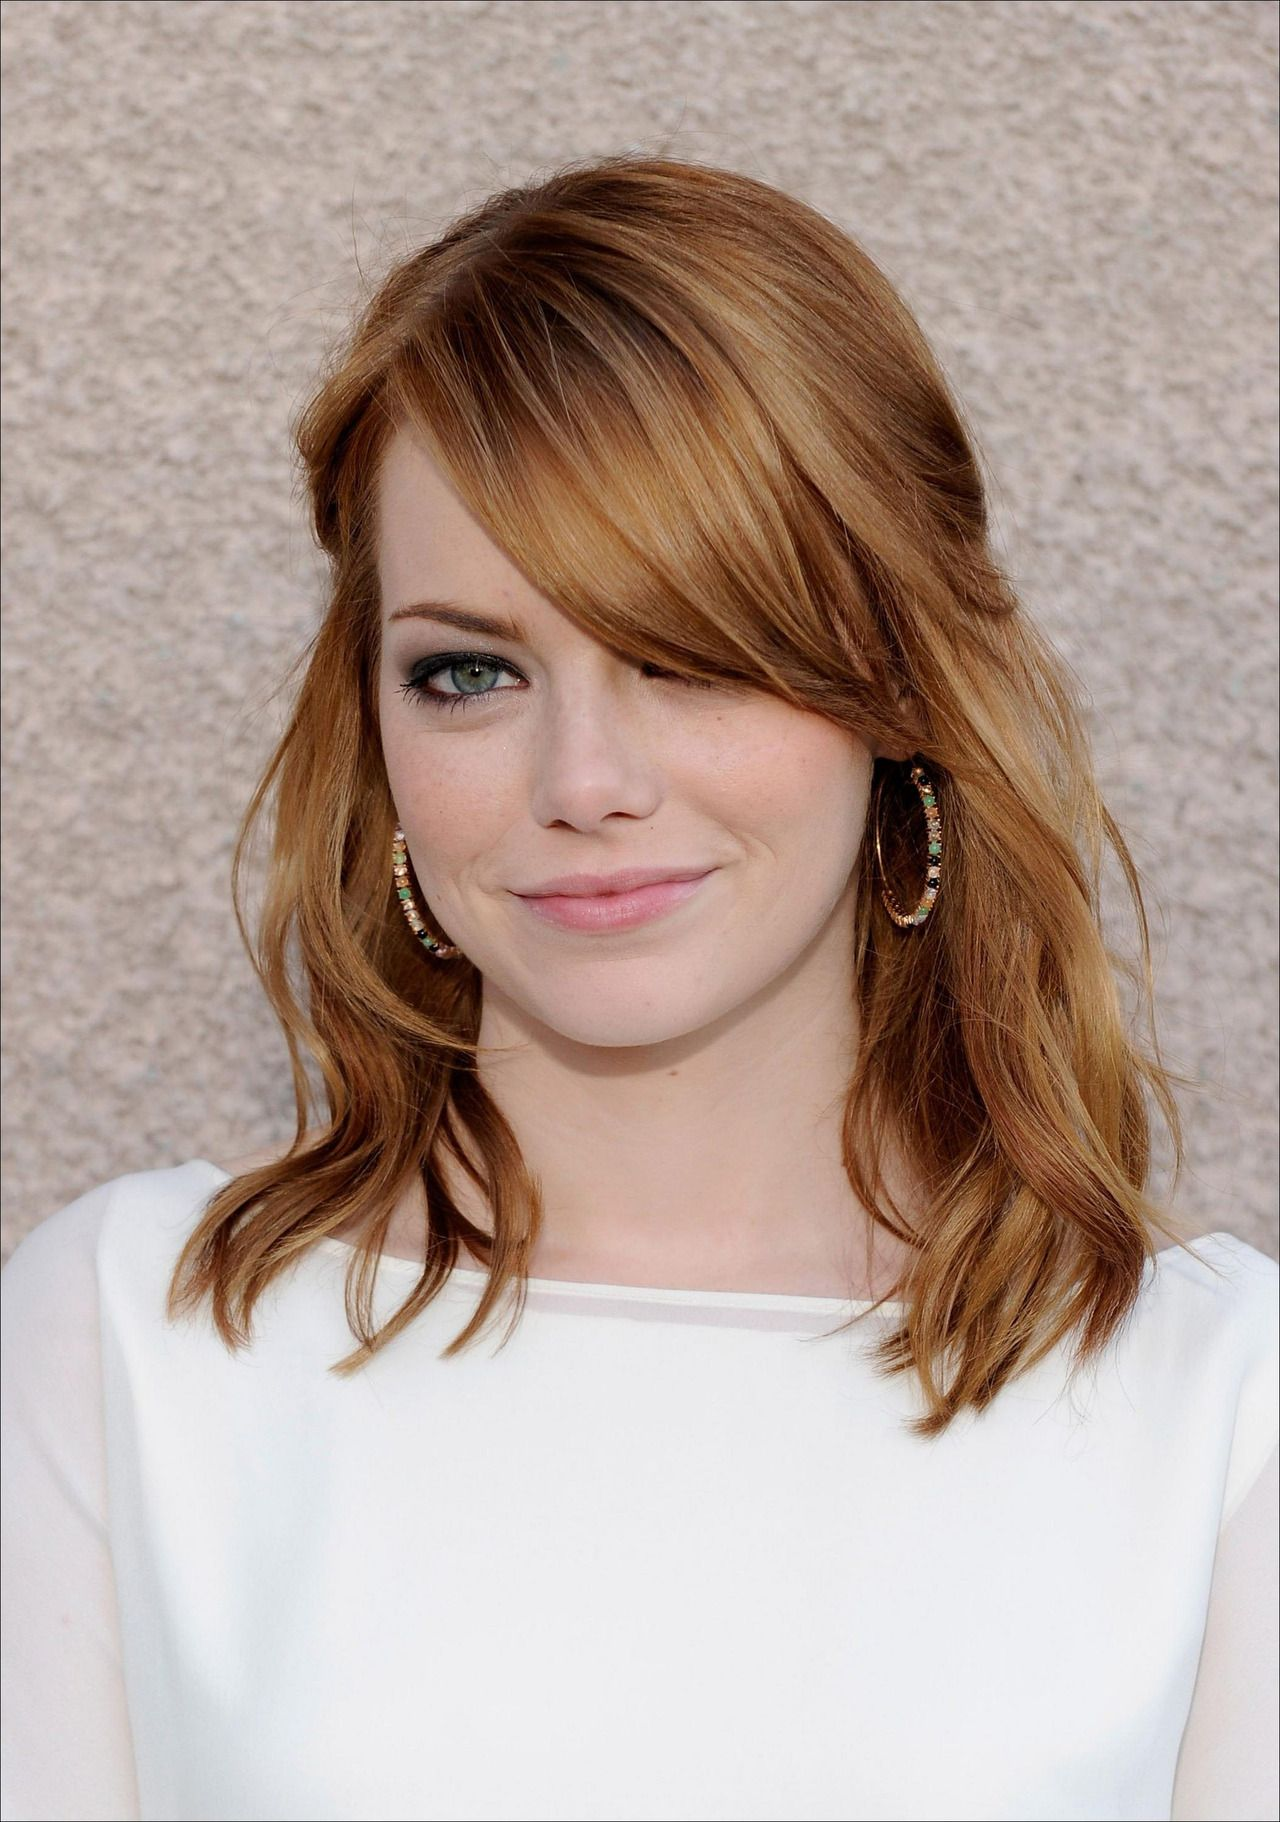 Emma Stone Cool Blonde Hair Blonde Hair Color Hair Styles